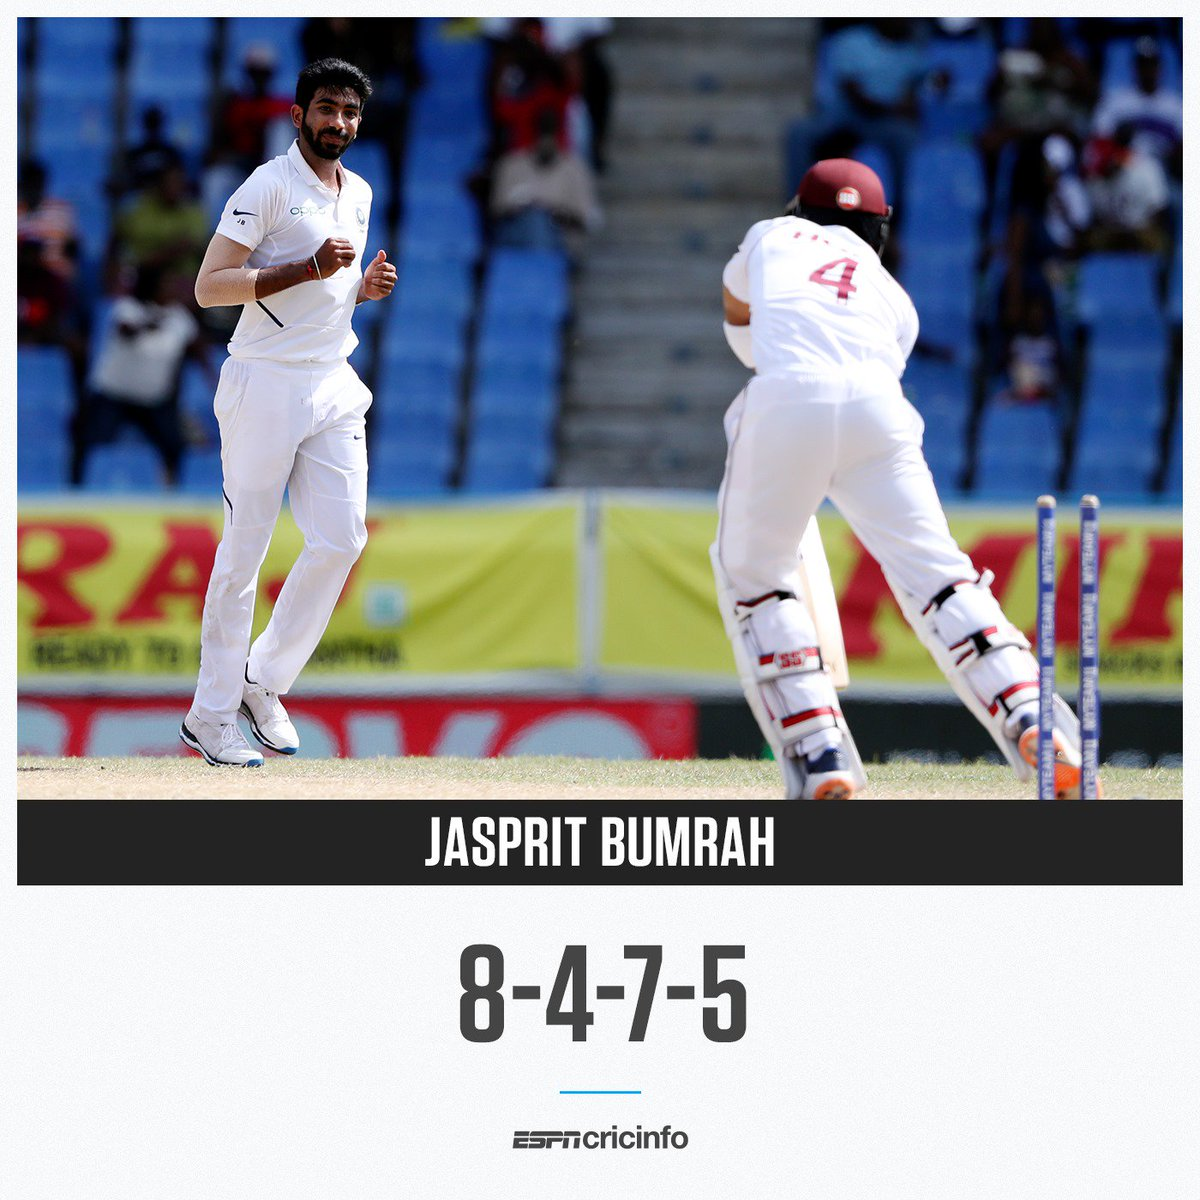 In the second innings of the Antigua Test, Jasprit Bumrah unleashed the absolute fury of the outswinger #WIvIND es.pn/2Lbu2yB